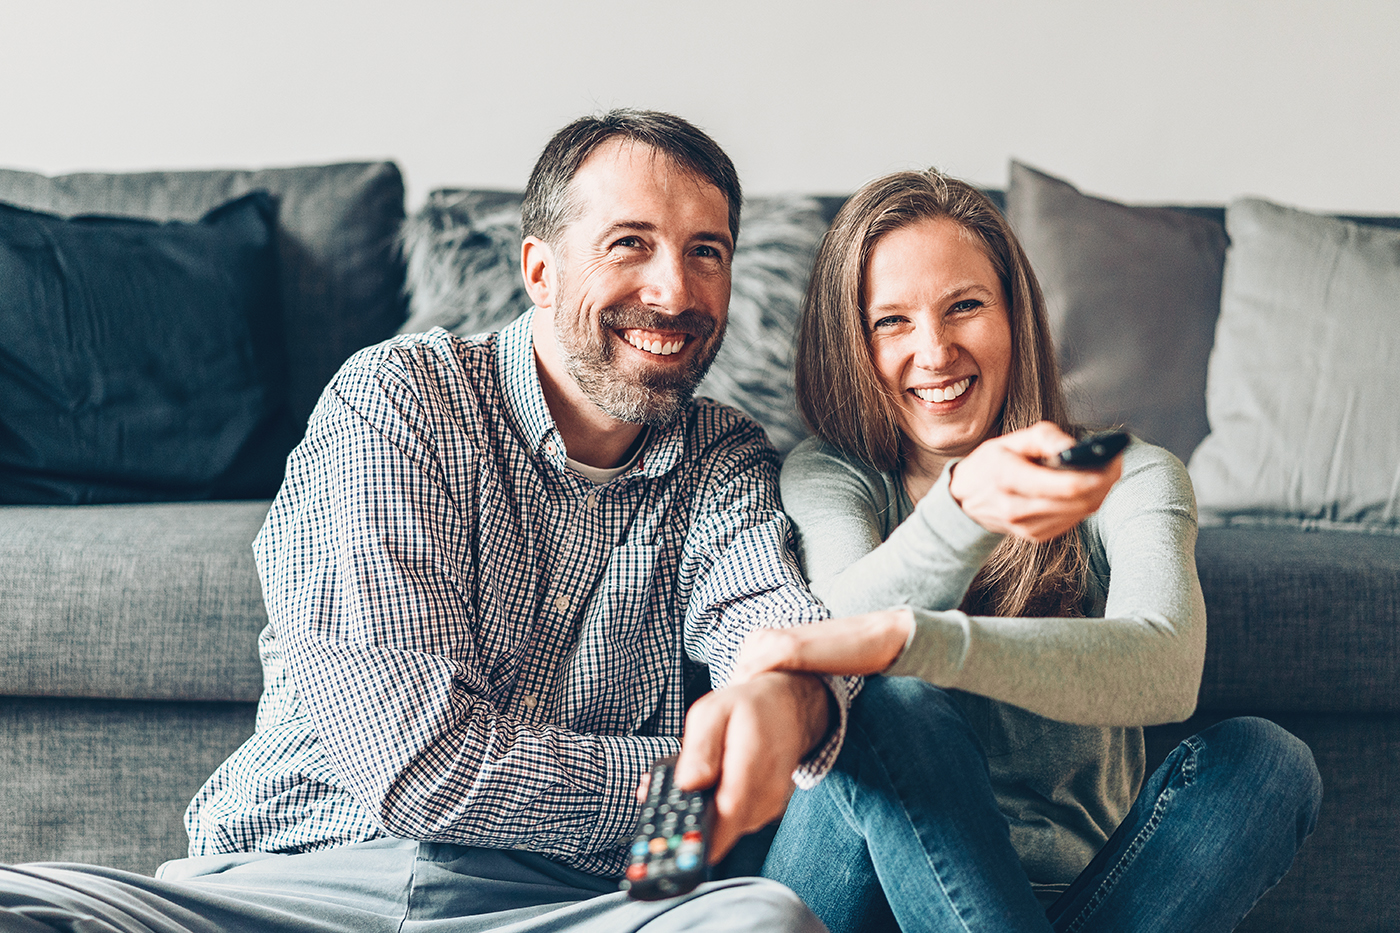 couple on couch fighting over tv channel